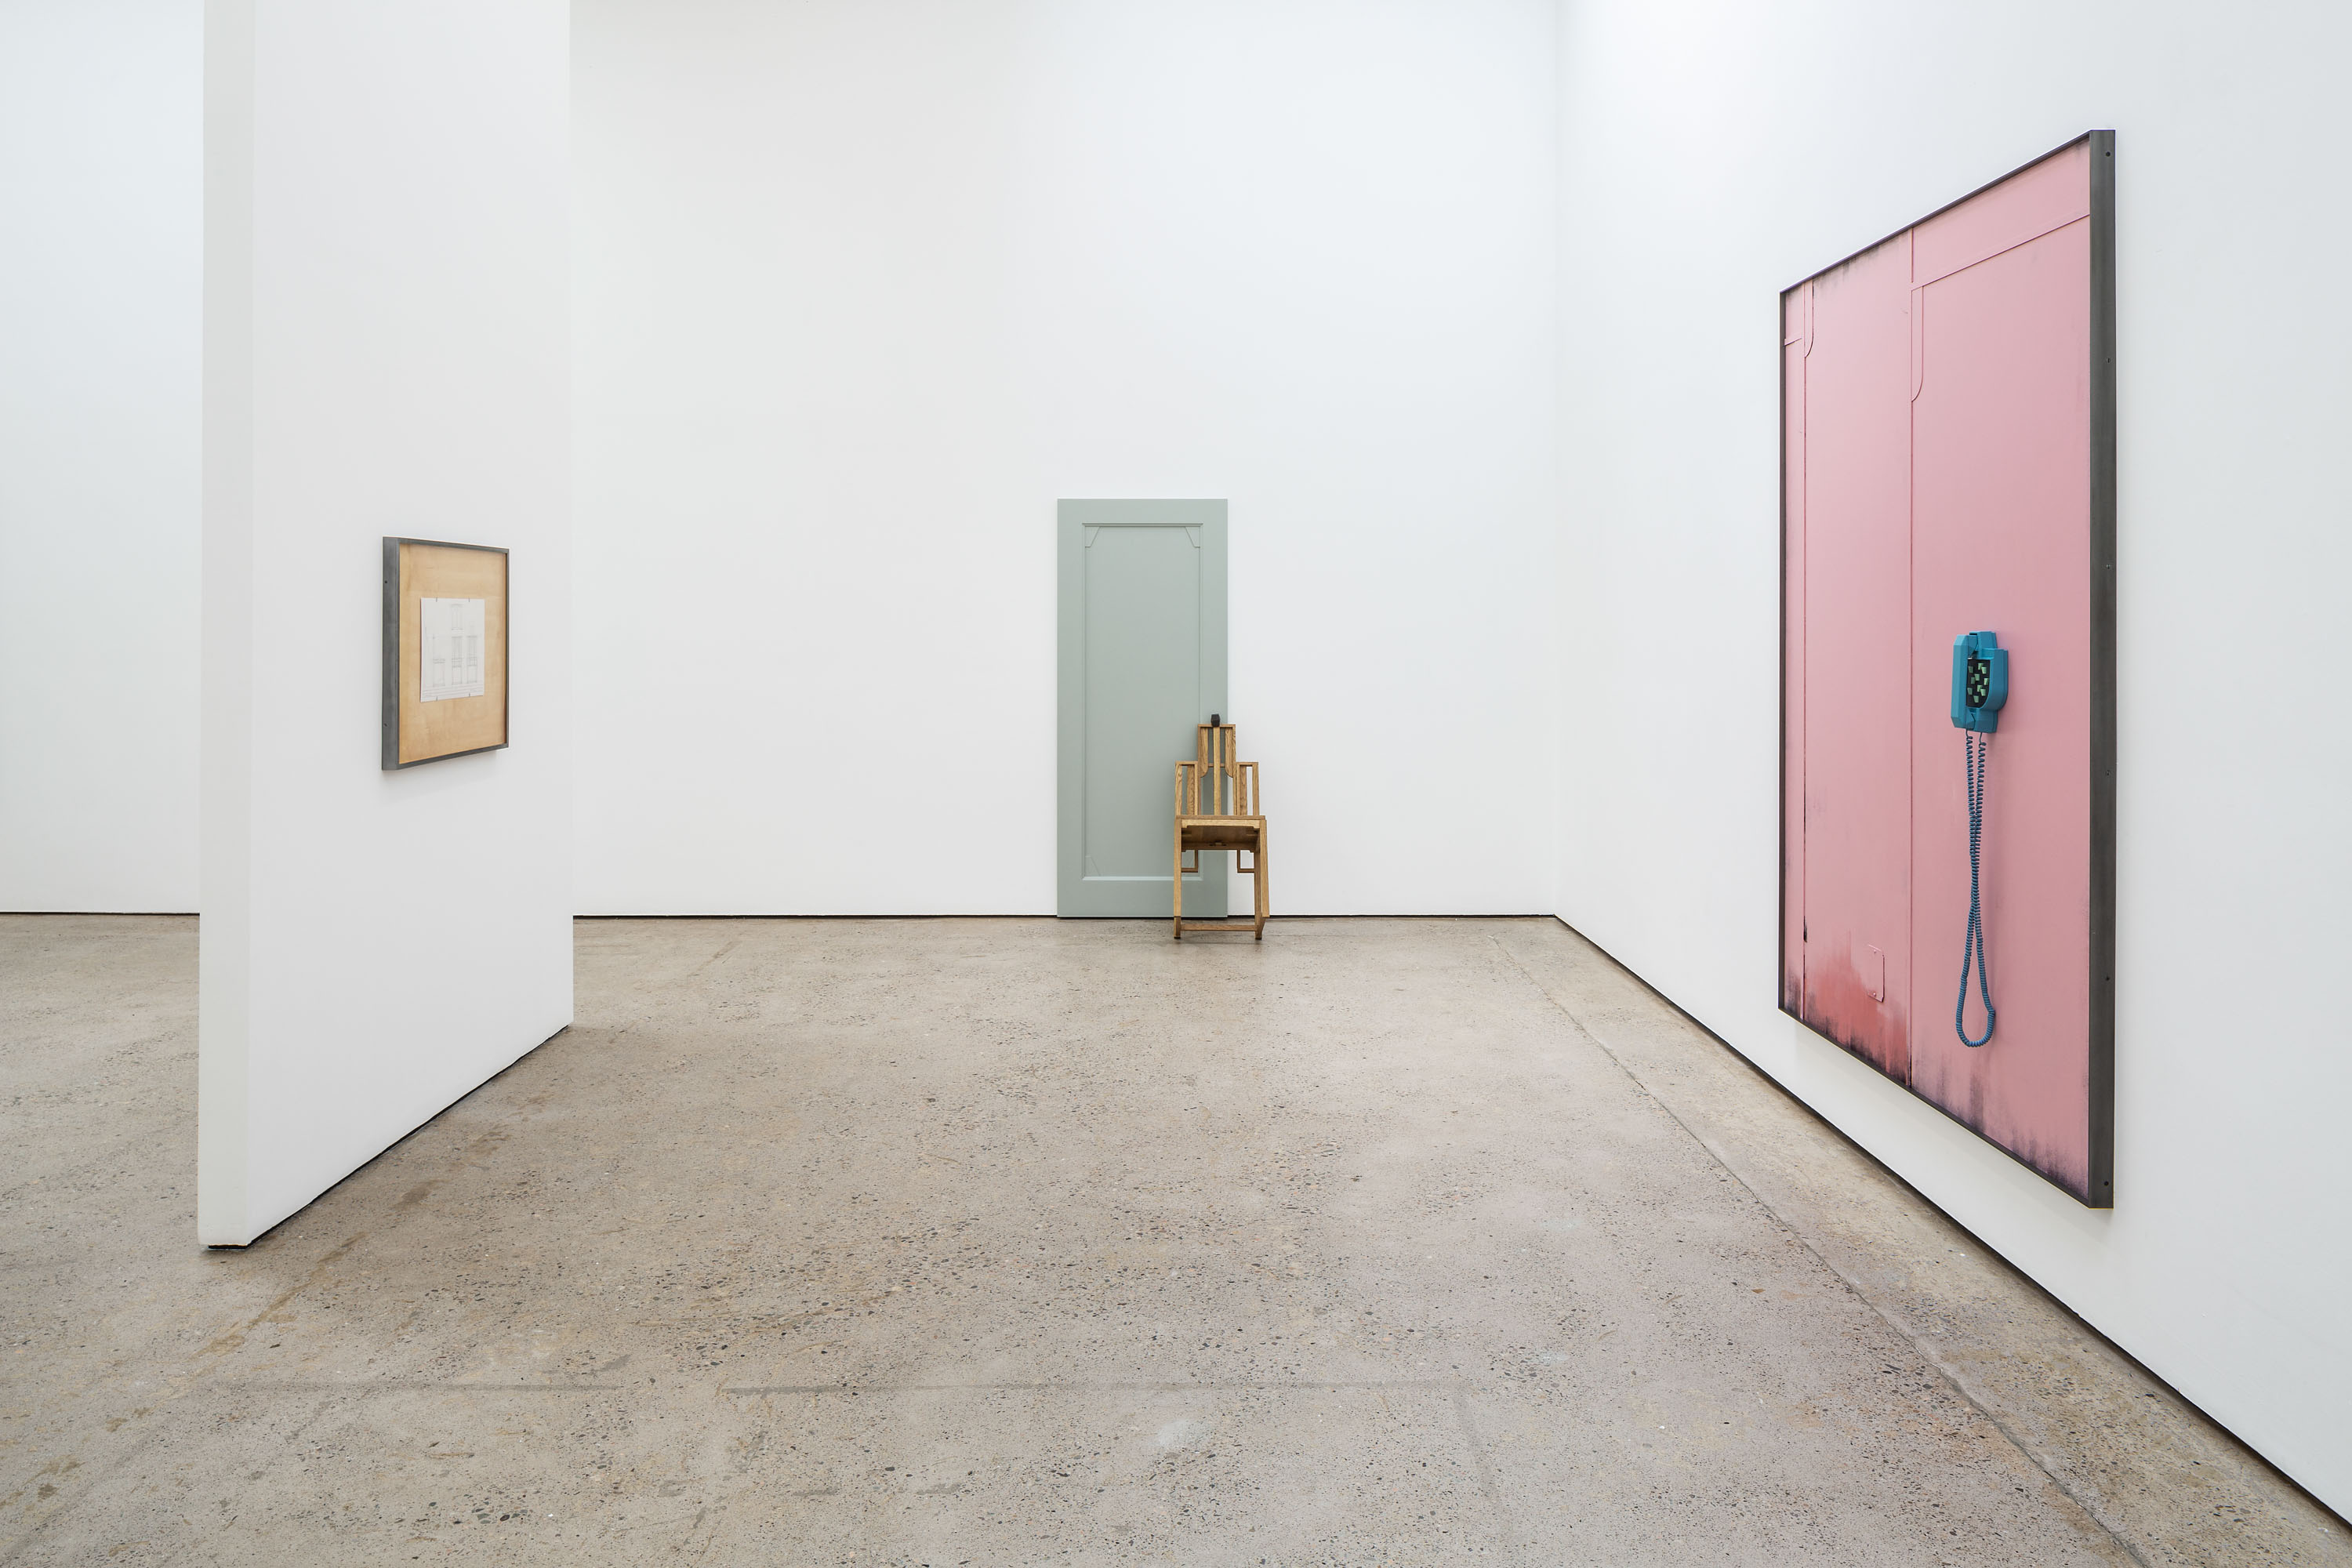 Installation view 'No Clouds or Streams No Information or Memory', The Modern Institute, Aird's Lane, 2021